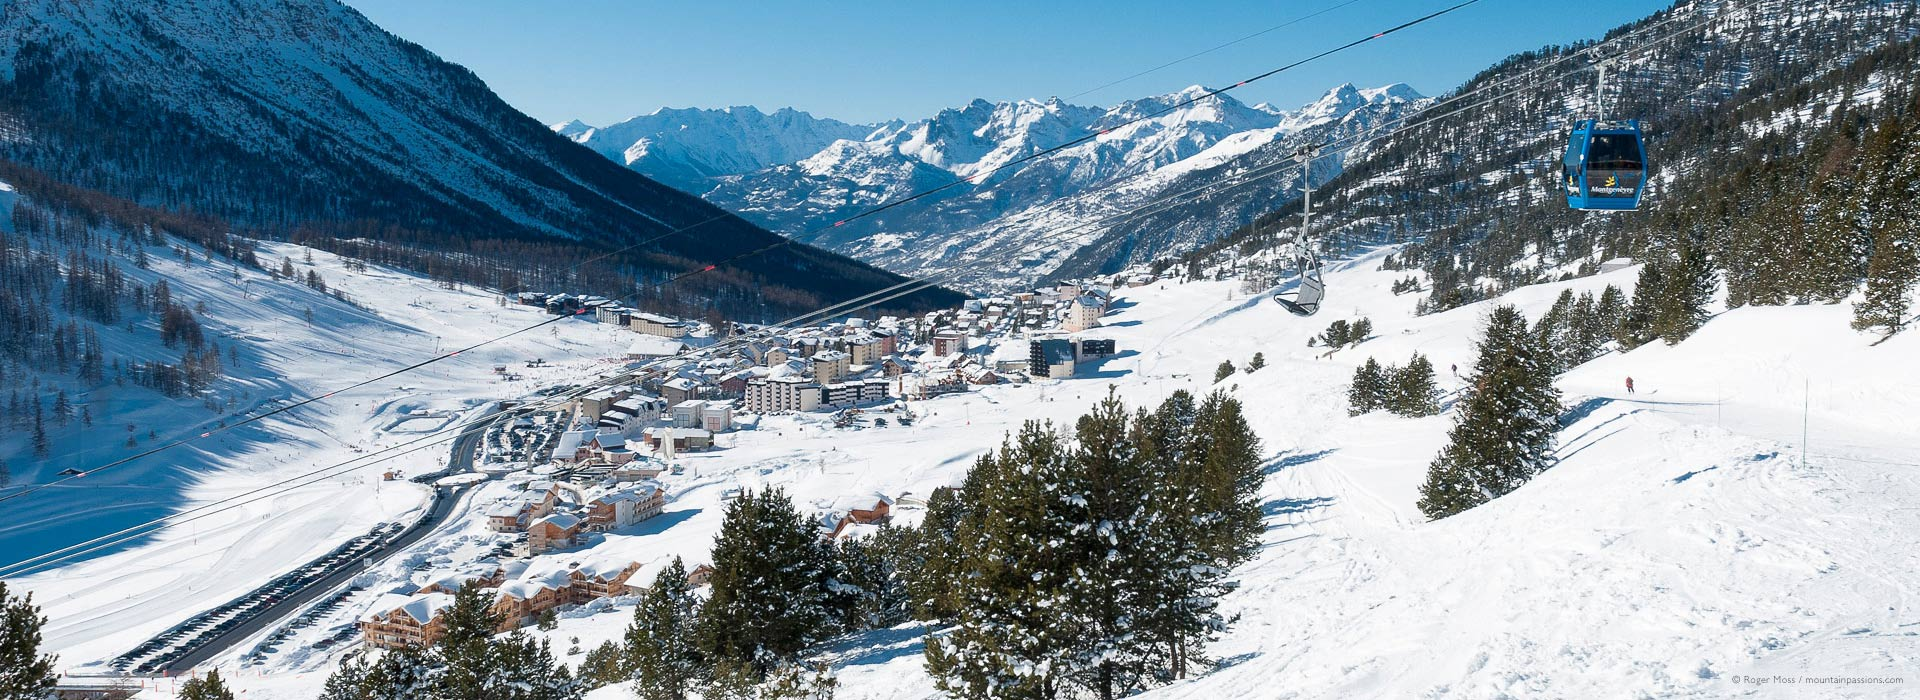 Wide view from chairlift of ski village, valley and mountains at Montgenevre.